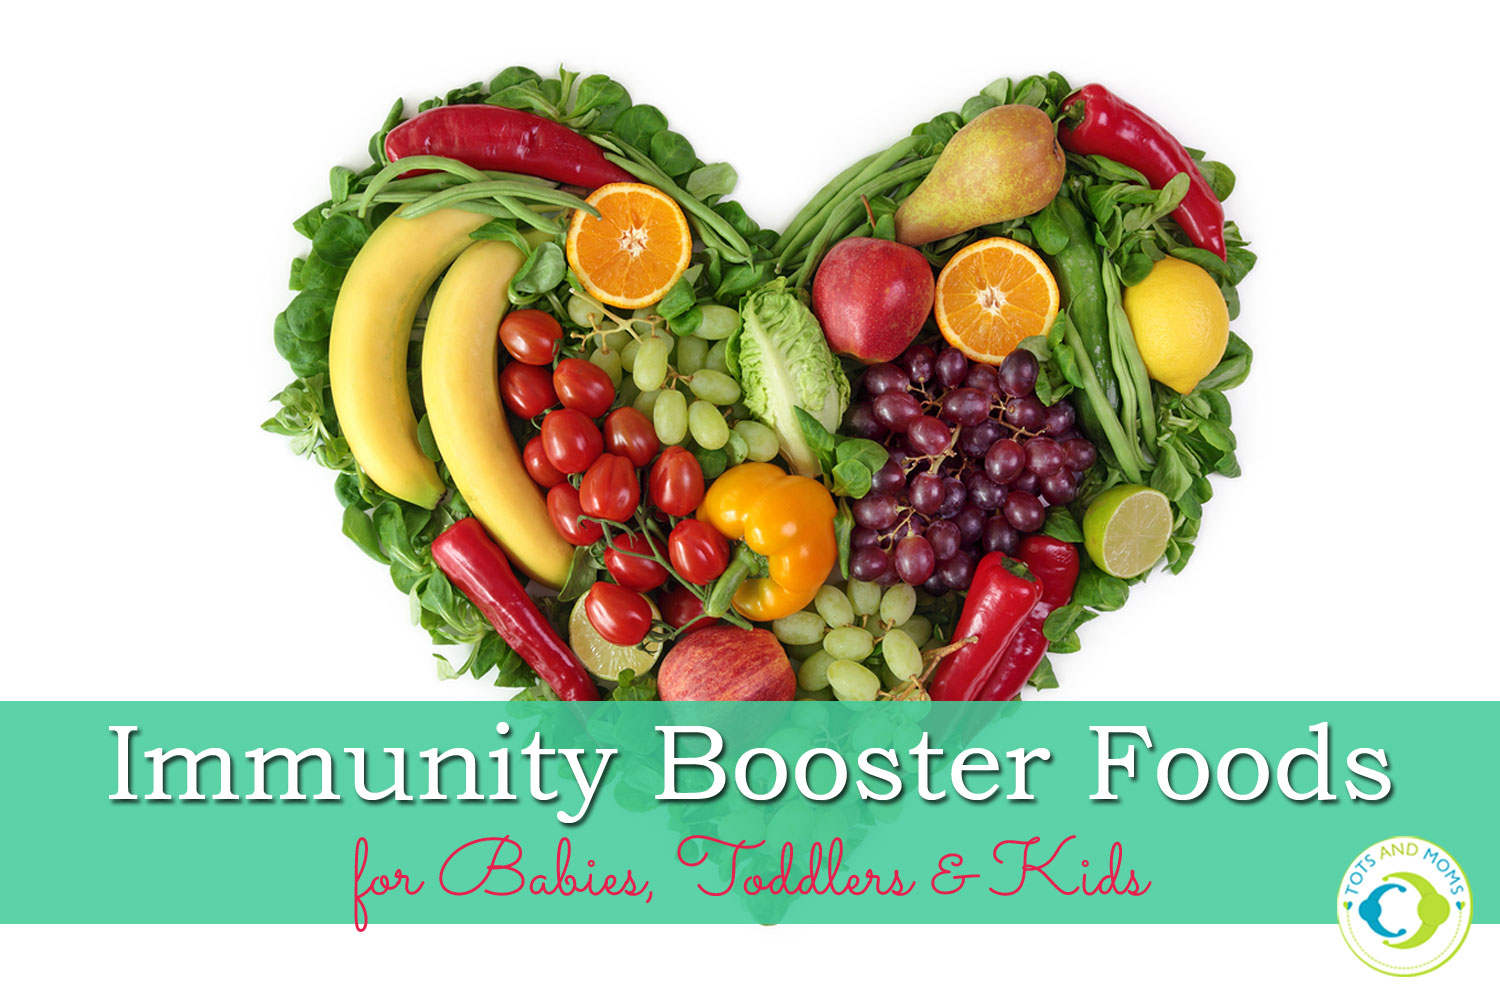 Immunity Booster Foods for Babies, Toddlers, Kids and Family